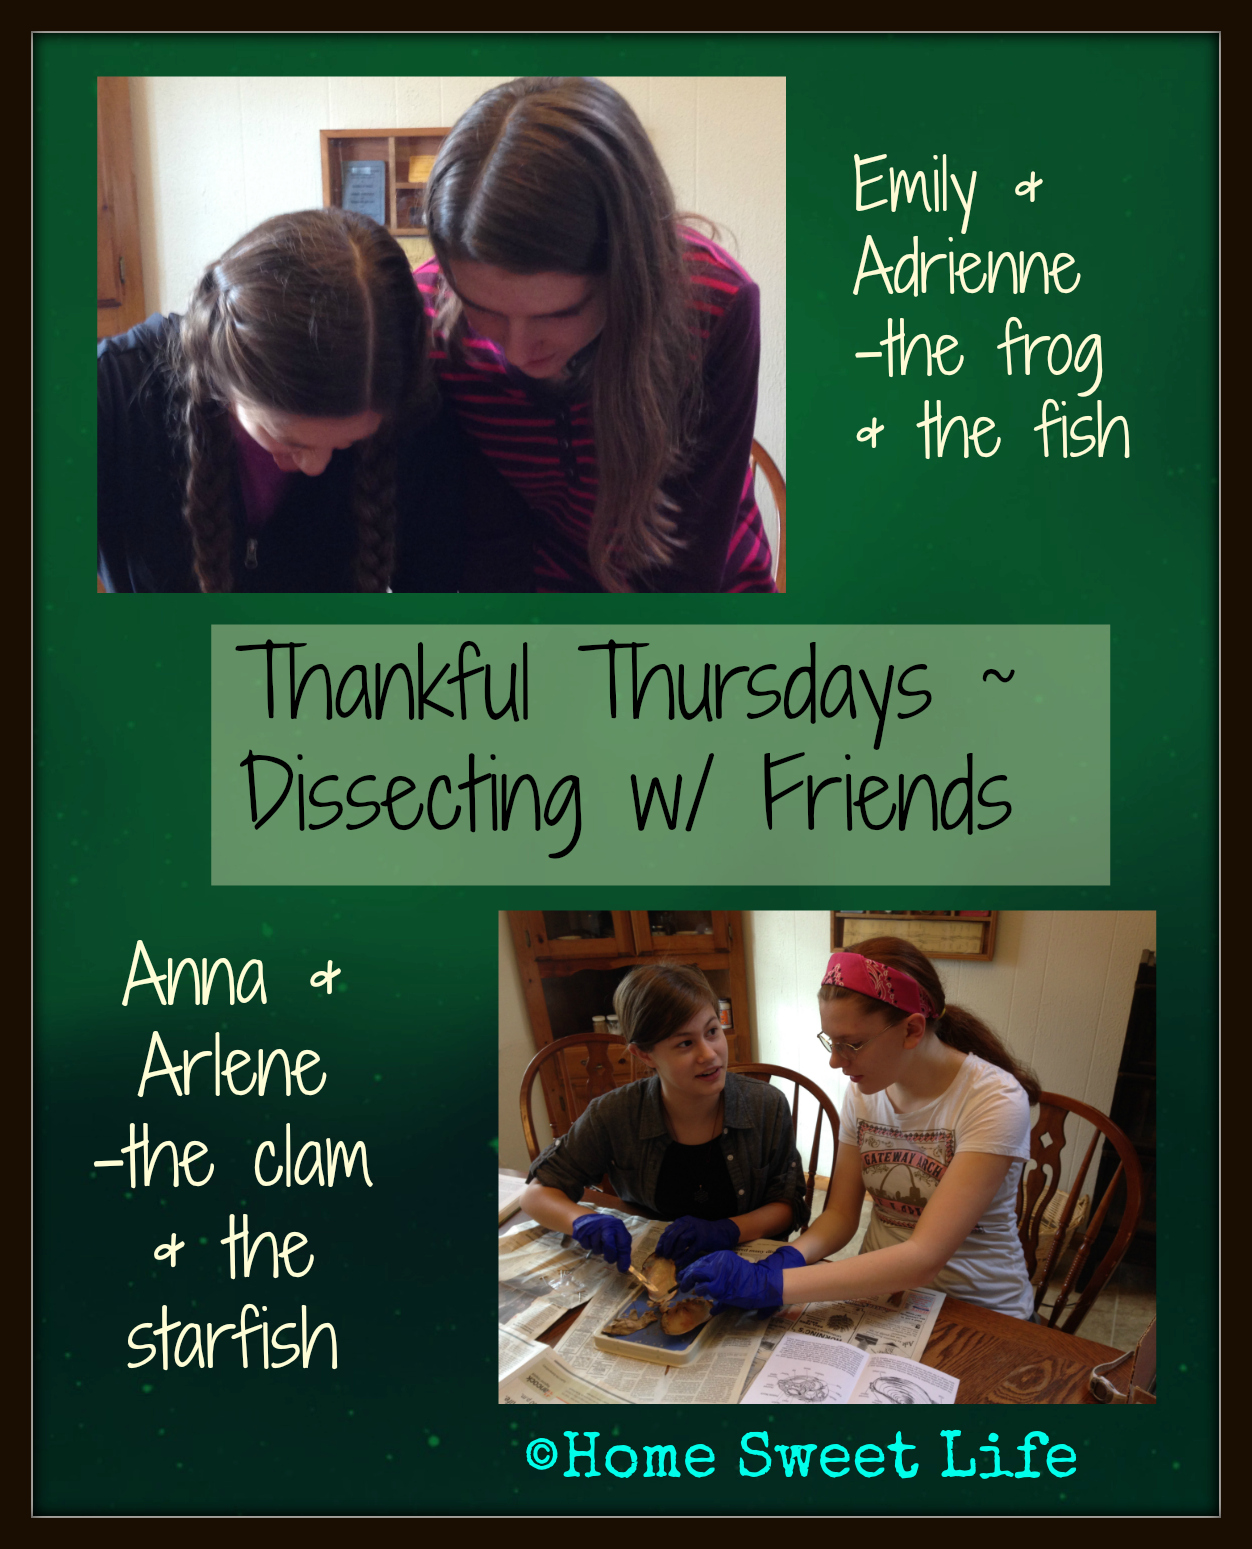 Thankful Thursdays - Dissection